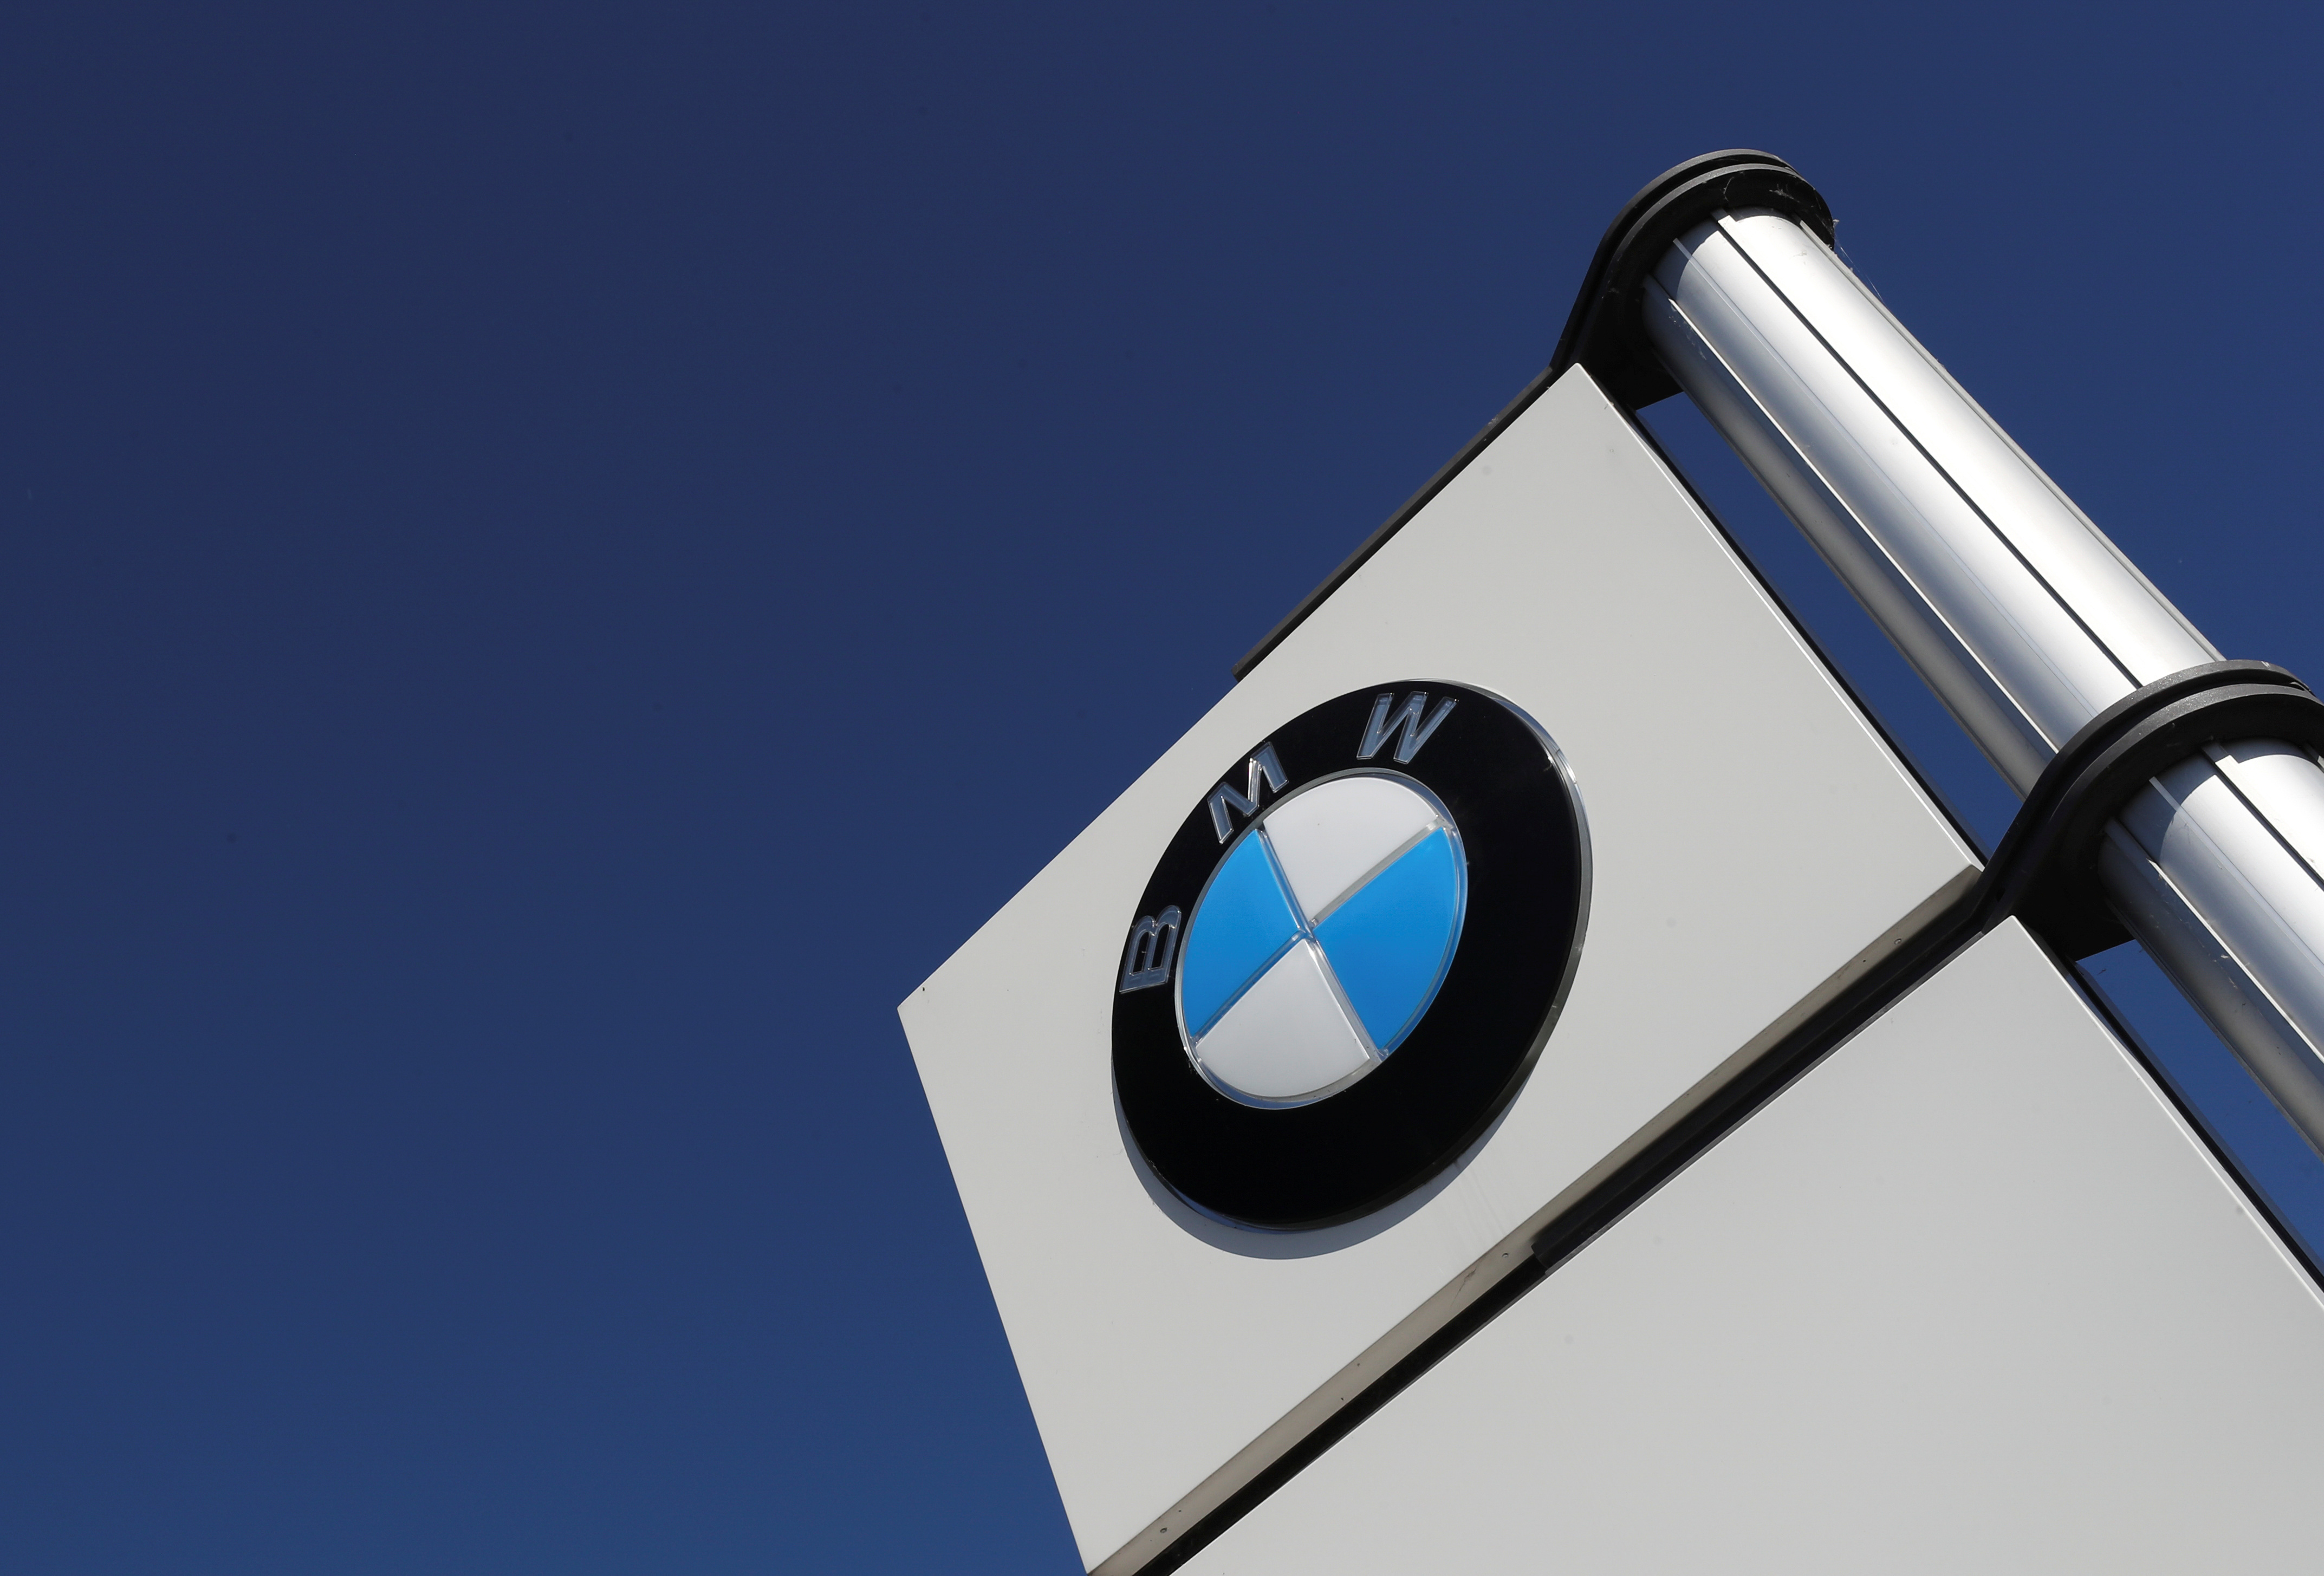 A logo of BMW is seen outside a BMW car dealer, amid the coronavirus disease (COVID-19) outbreak in Brussels, Belgium May 28, 2020. REUTERS/Yves Herman